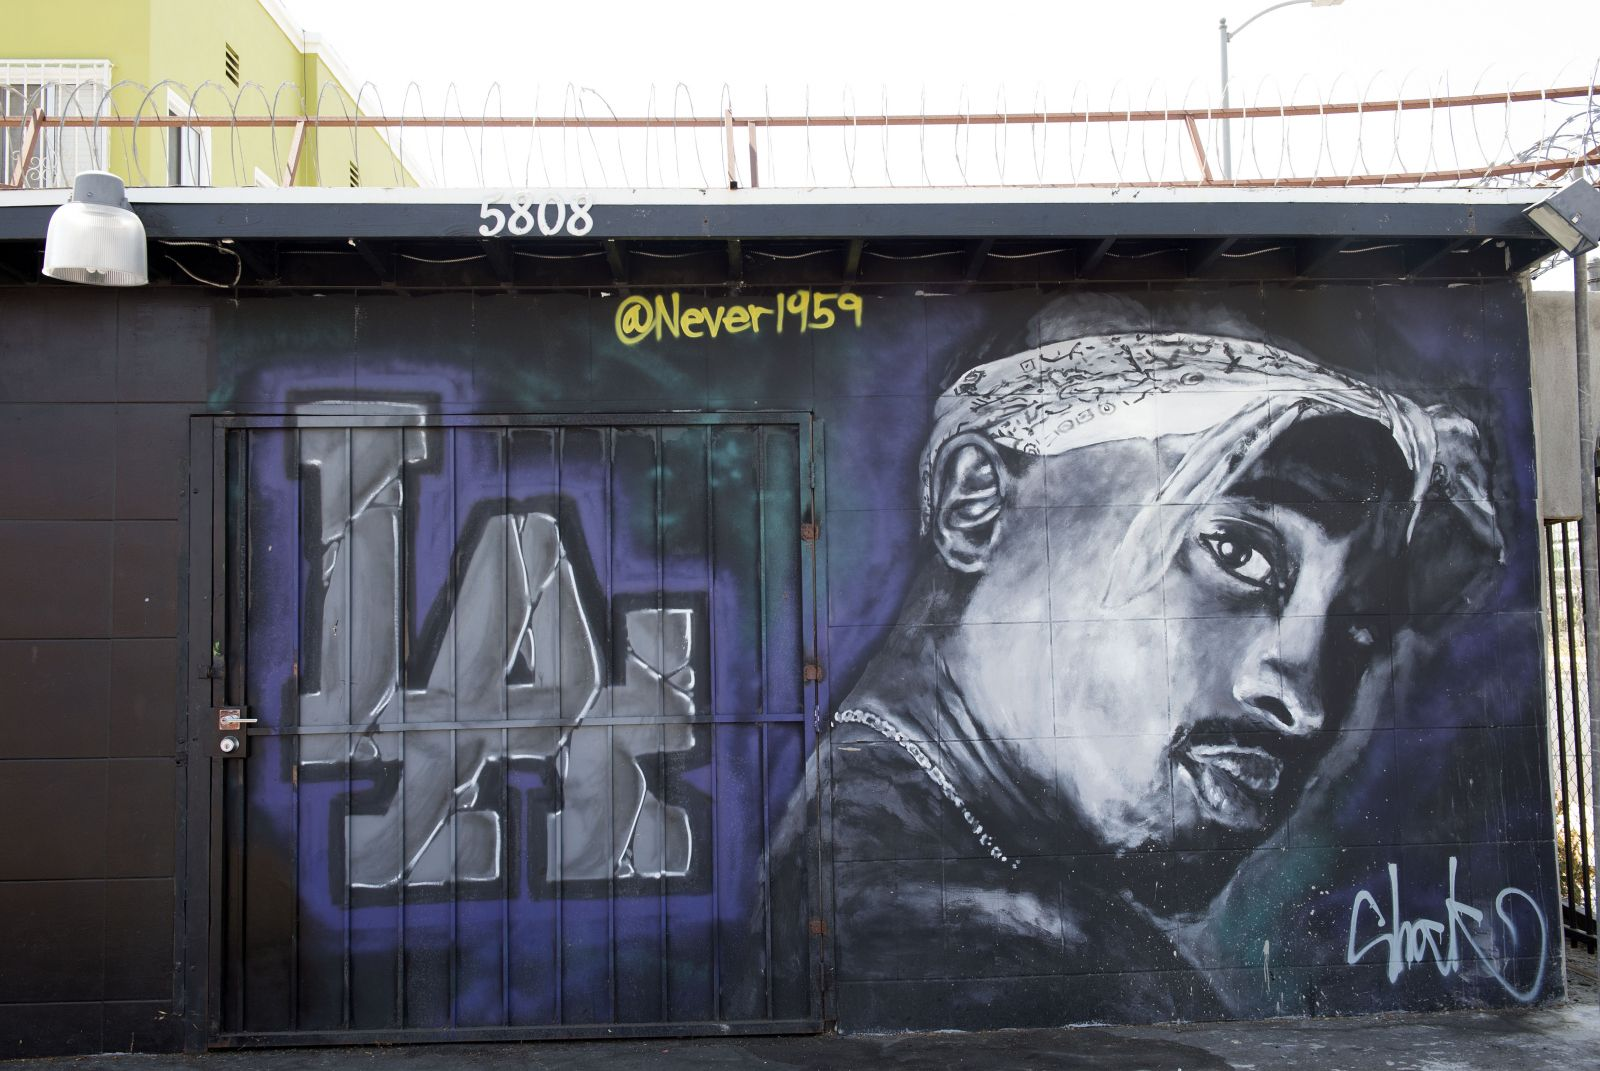 Who killed tupac shakur 2pac murder theories and conspiracies explained for anniversary of rappers death